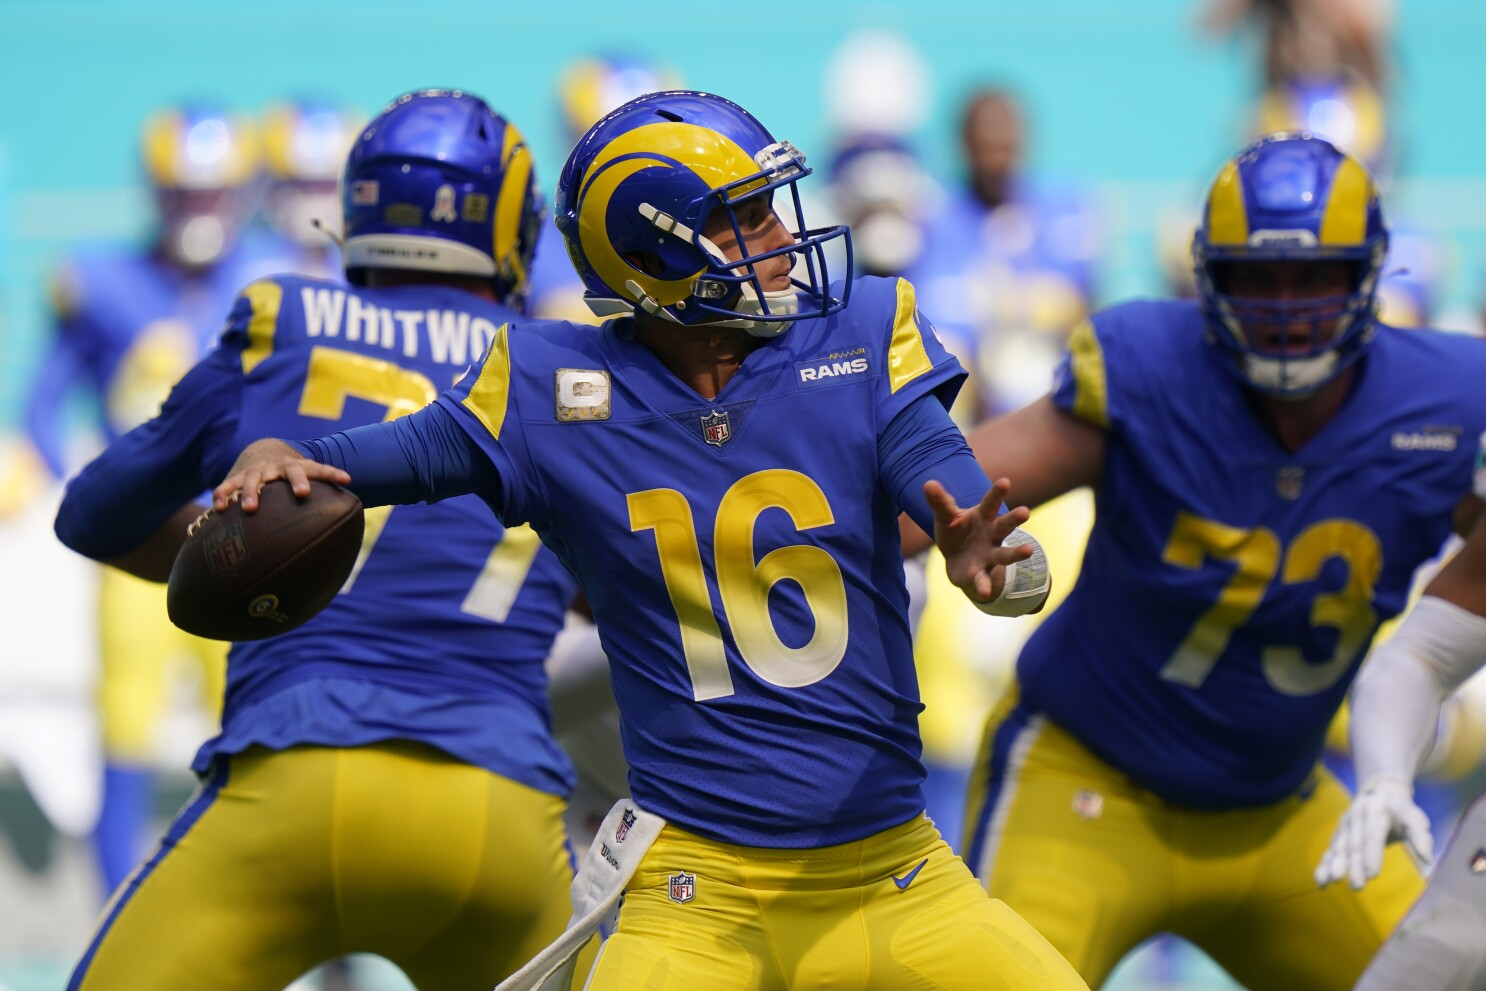 Jared Goff's mistakes doom Rams in loss to Dolphins - Los Angeles Times